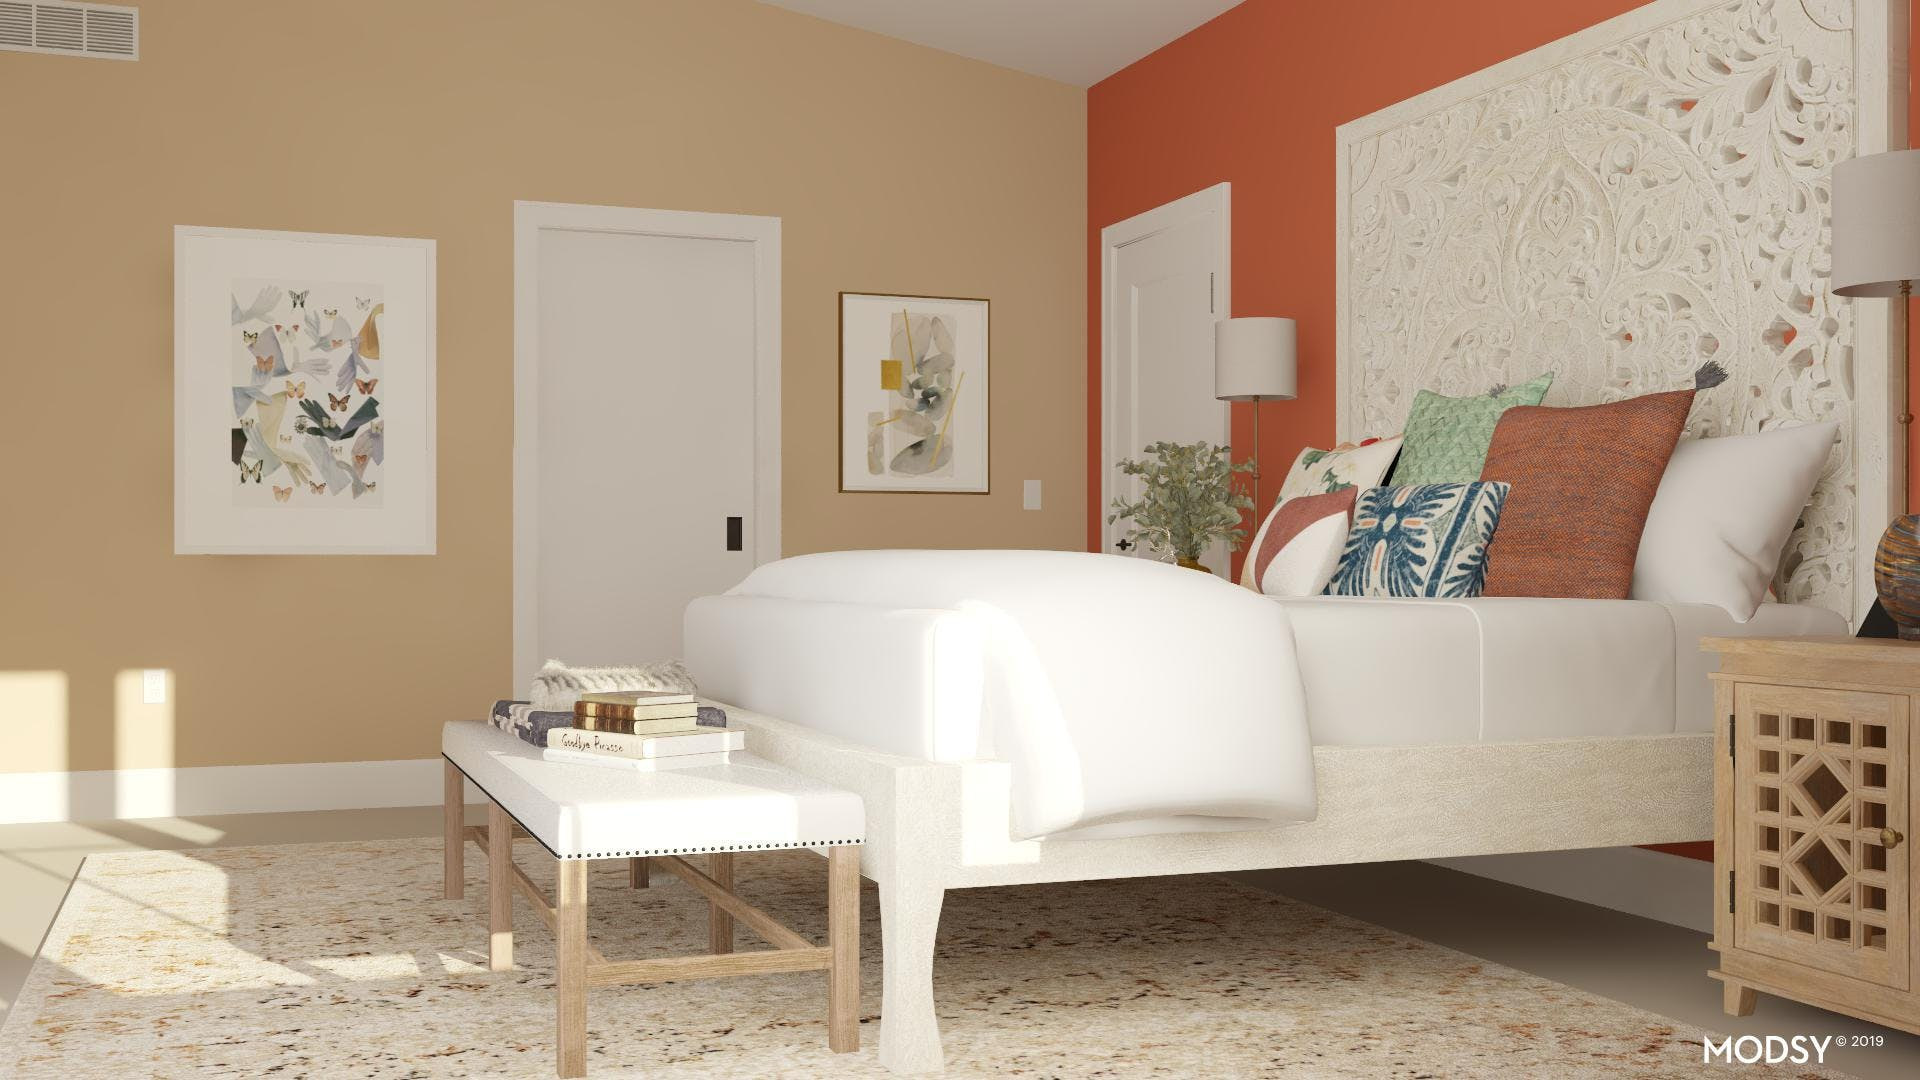 Take a Seat: Practical Bedroom Seating